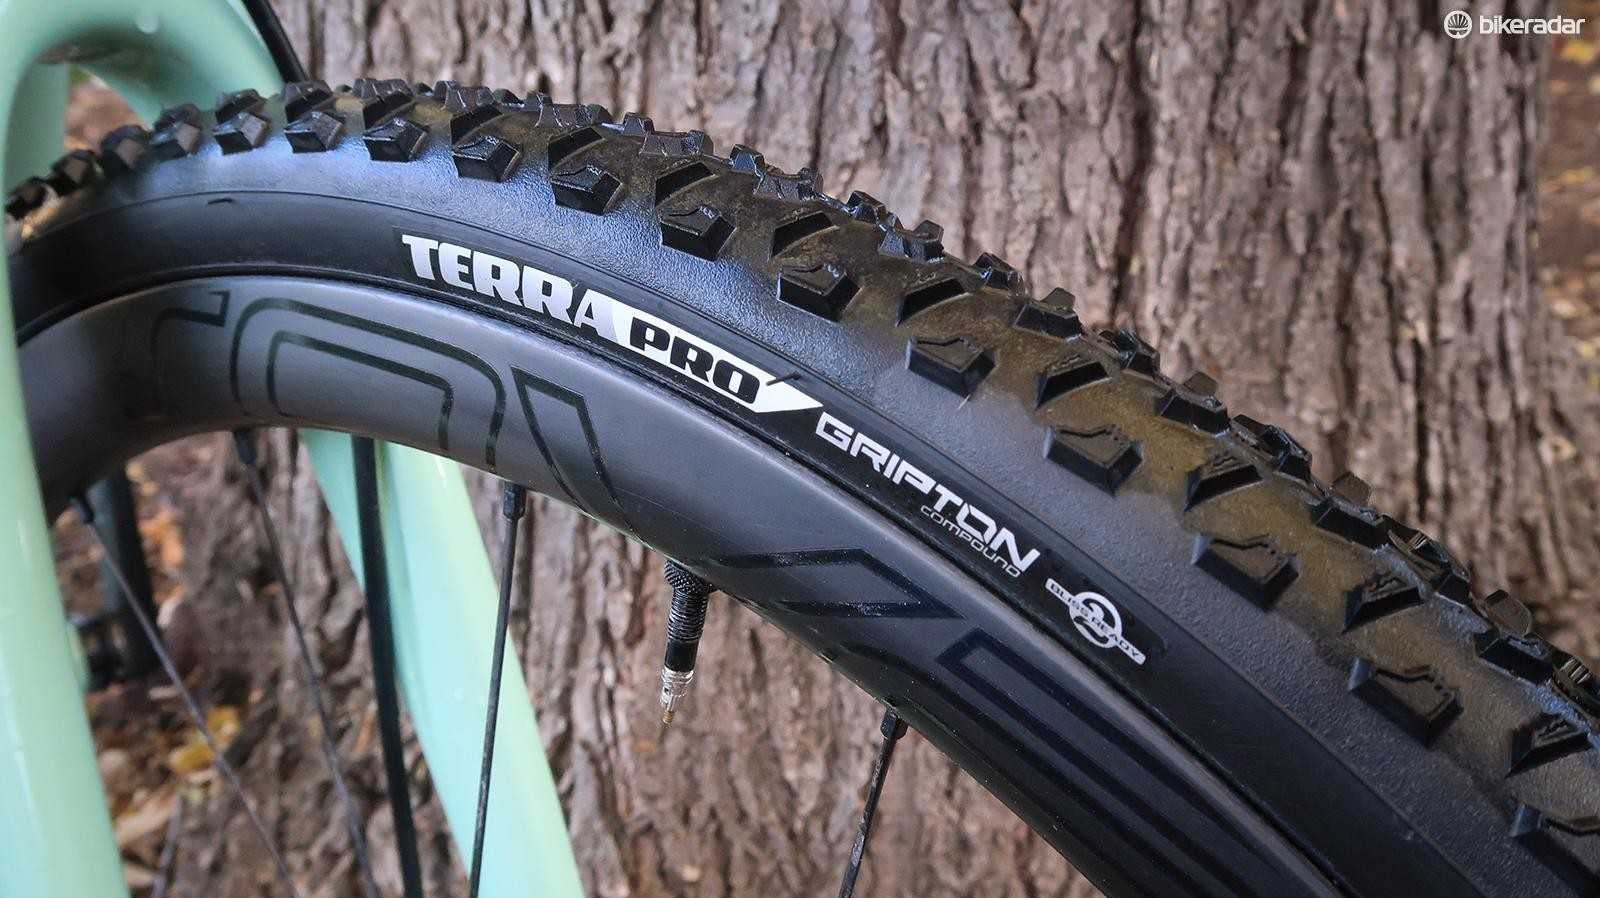 The Specialized Terra Pro has been redesigned for the 2017–2018 CX season